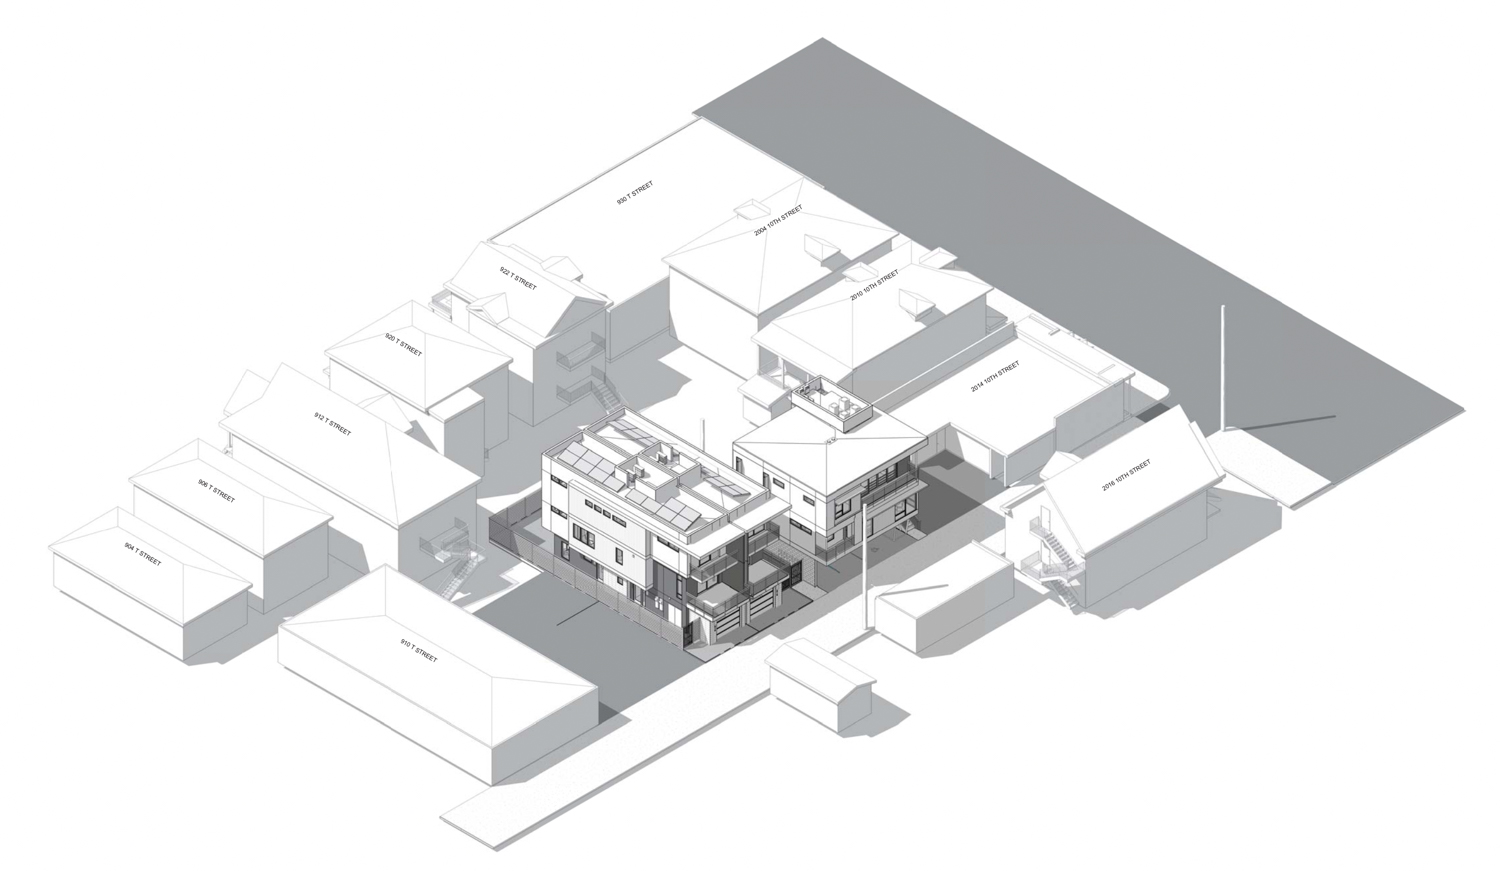 Tomato Alley Infill apartments aerial perspective, rendering by Ellis Architects